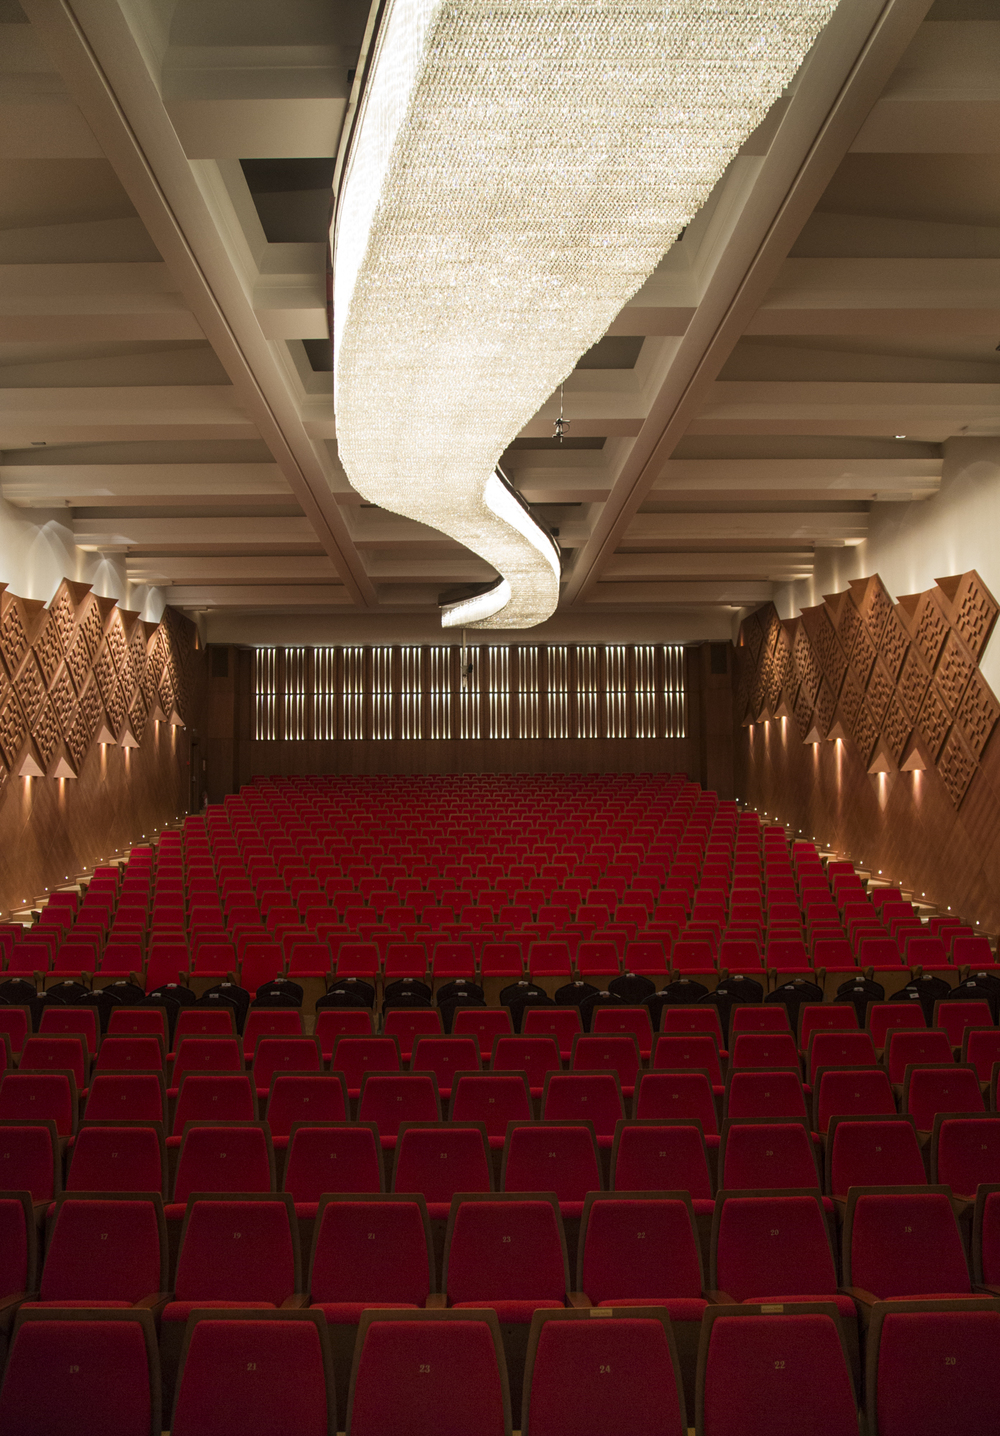 The CSO concert room. The orchestra is supposed to get a newer and better room to perform in. The new building has been in constructions for over a decade now due to budgetary issues. Ankara, 18th of December 2014.